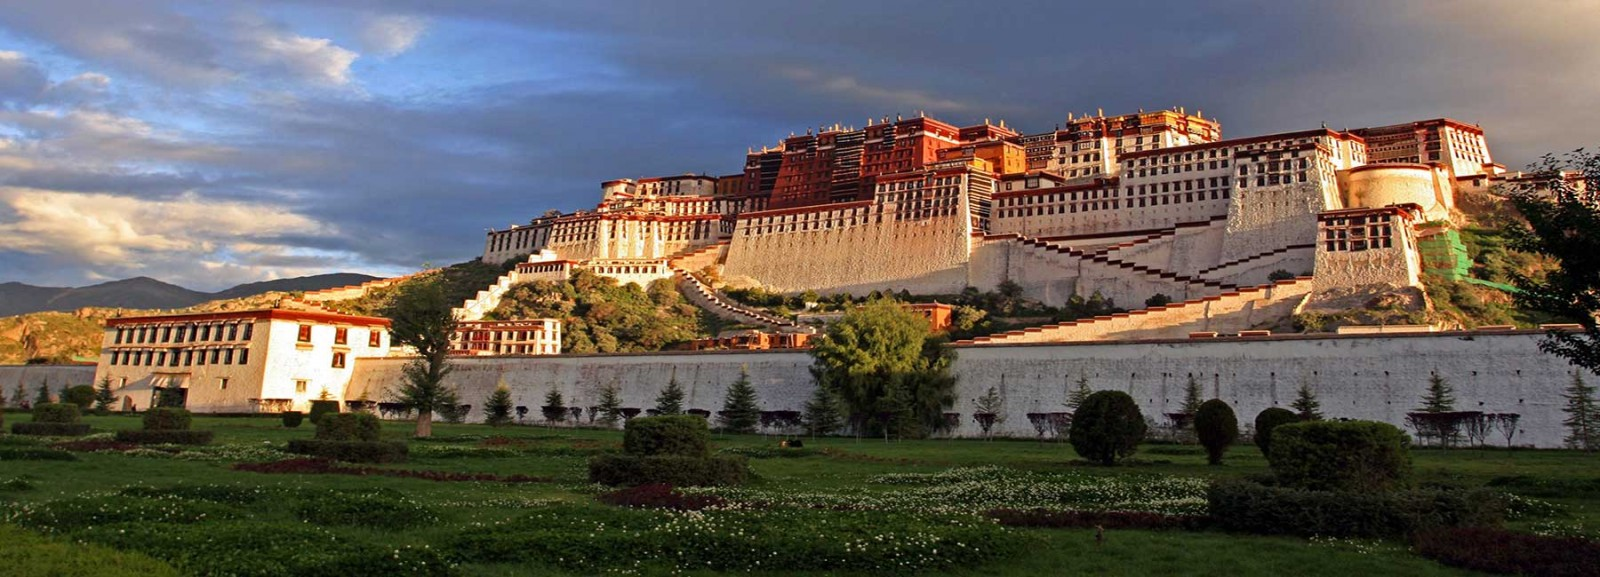 Visit Potala Palace, the landmark of Tibet